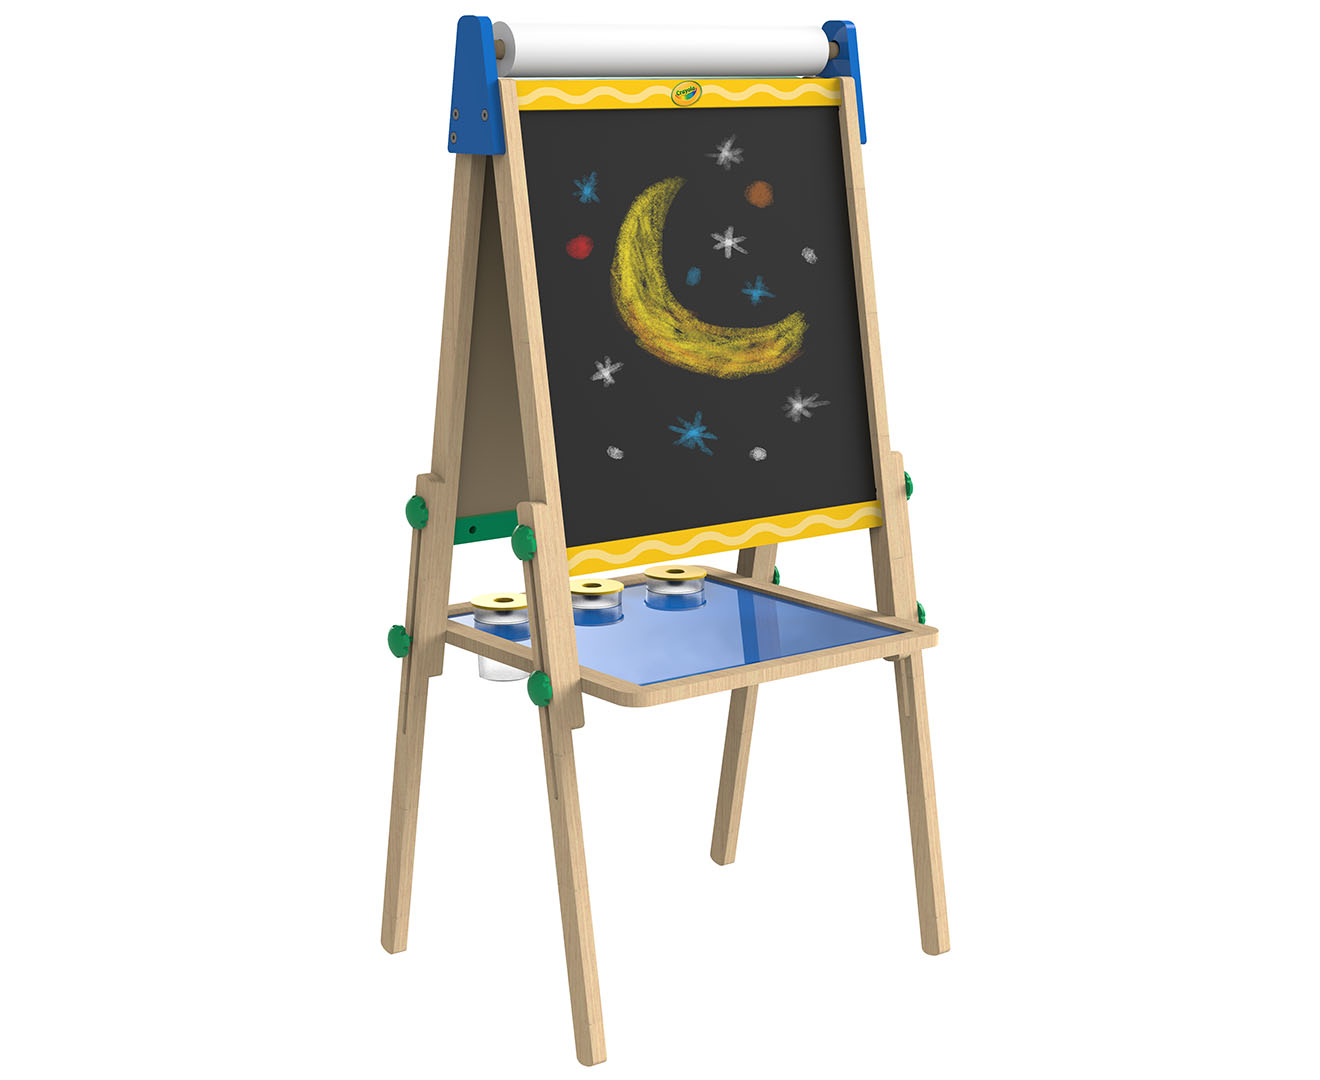 Crayola Kids Double Sided Wooden Art Easel Scoopon Shopping